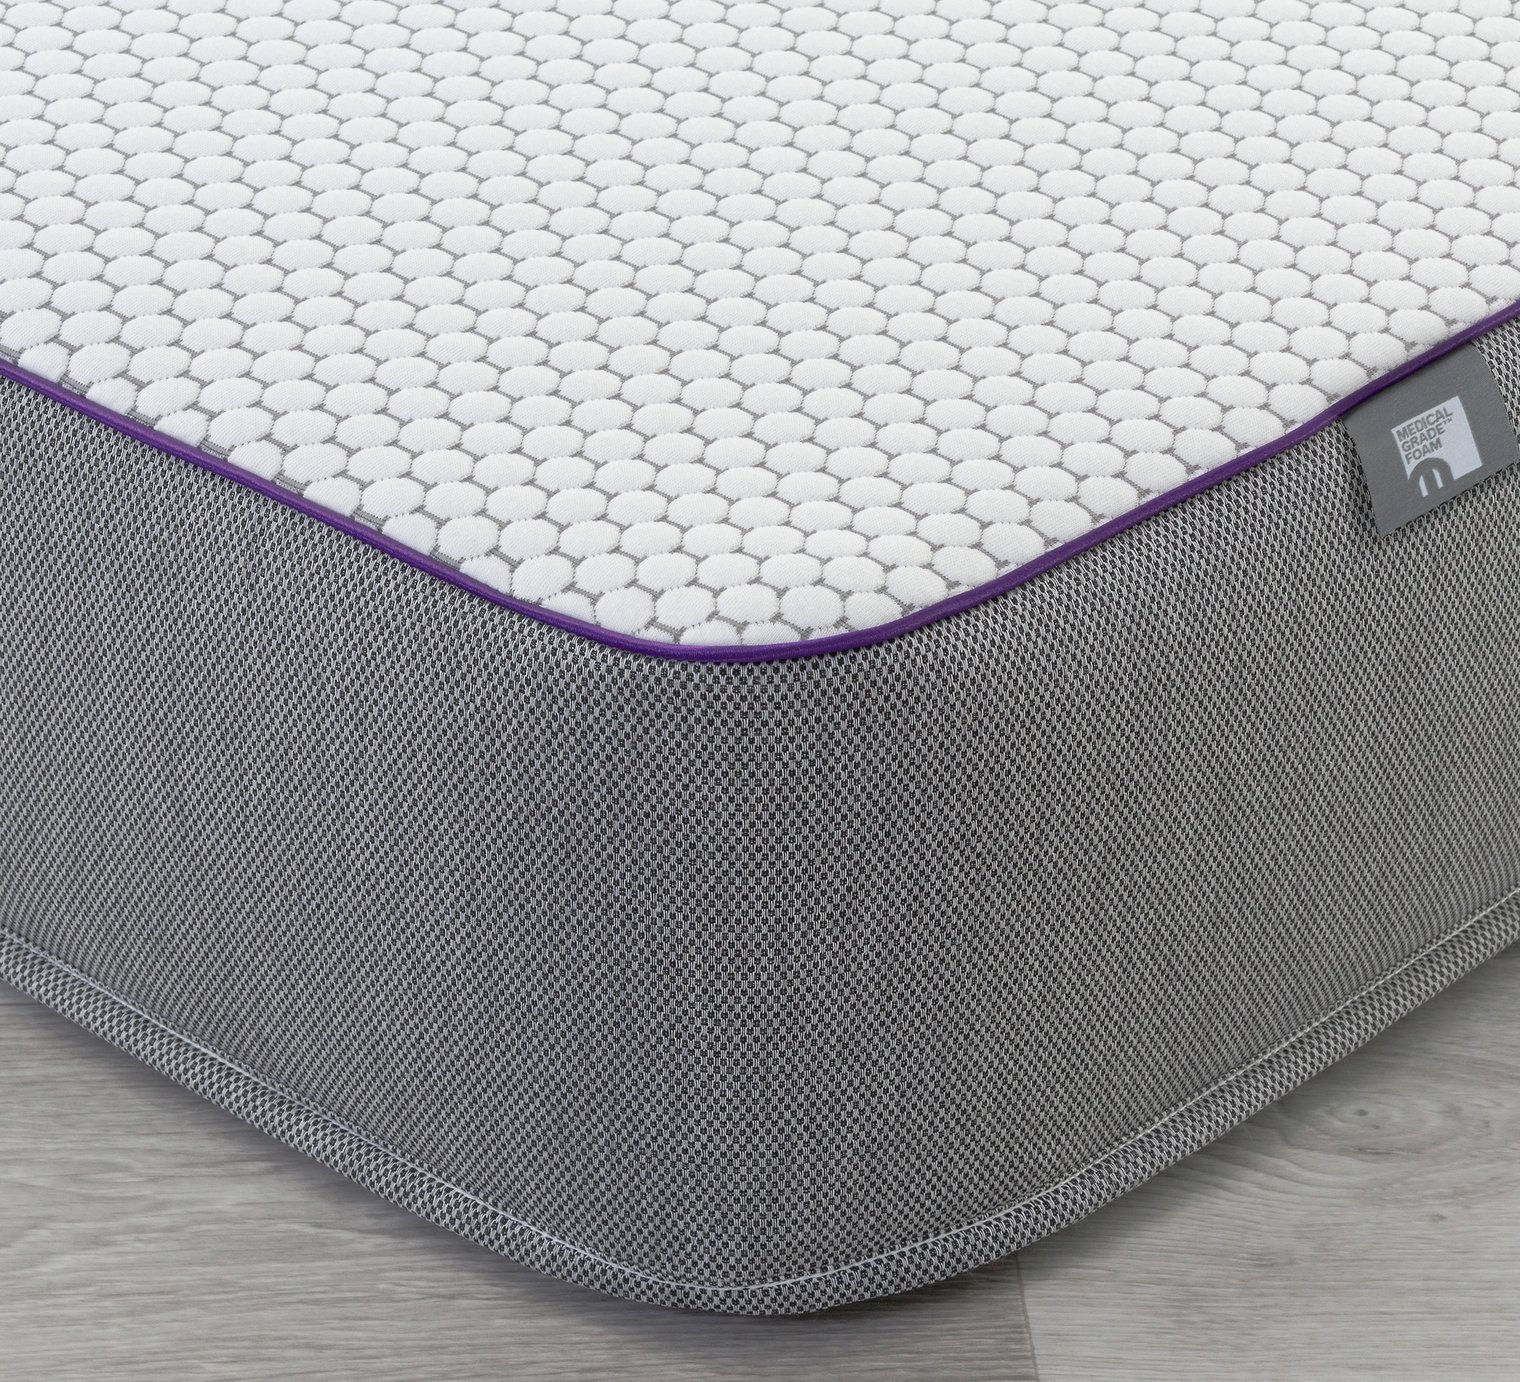 Mammoth wake essential small double mattress